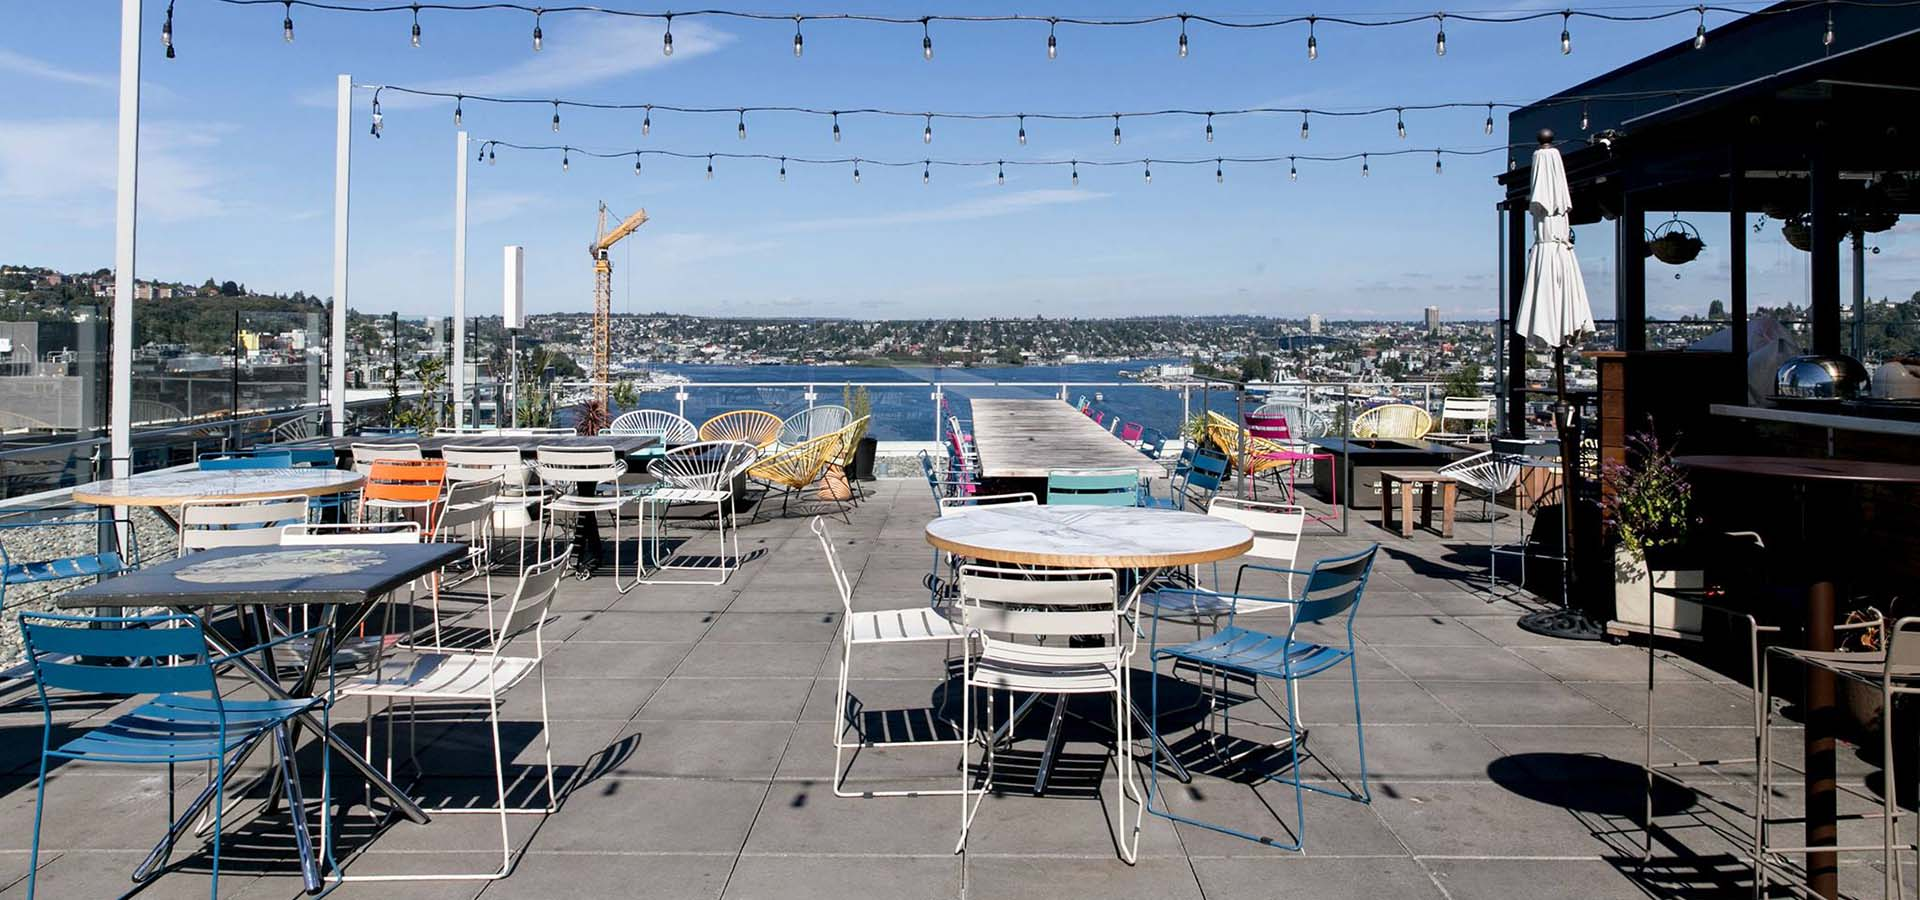 Restaurant outdoor rooftop patio with lake views.